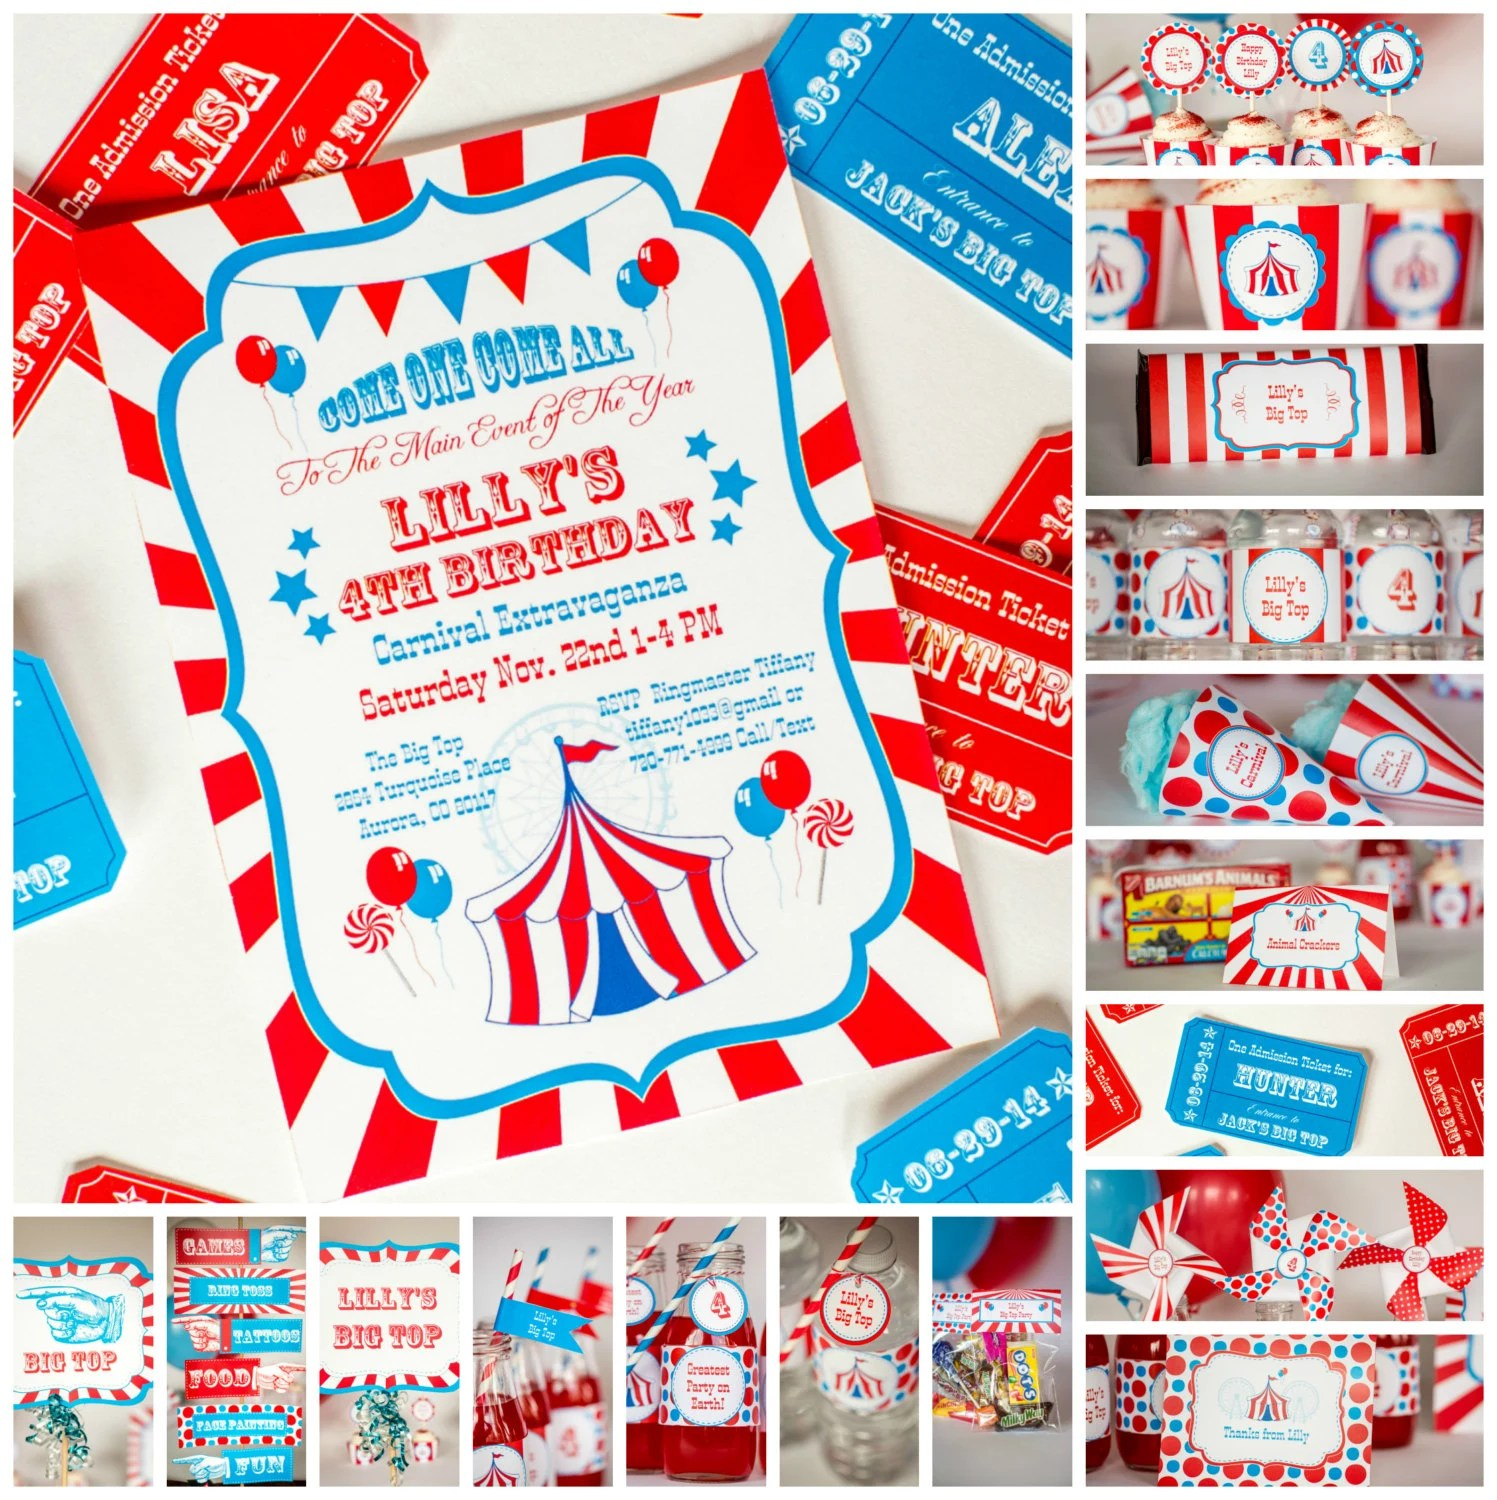 Carnival Party Kit with Invitation Personalized Carnival Etsy